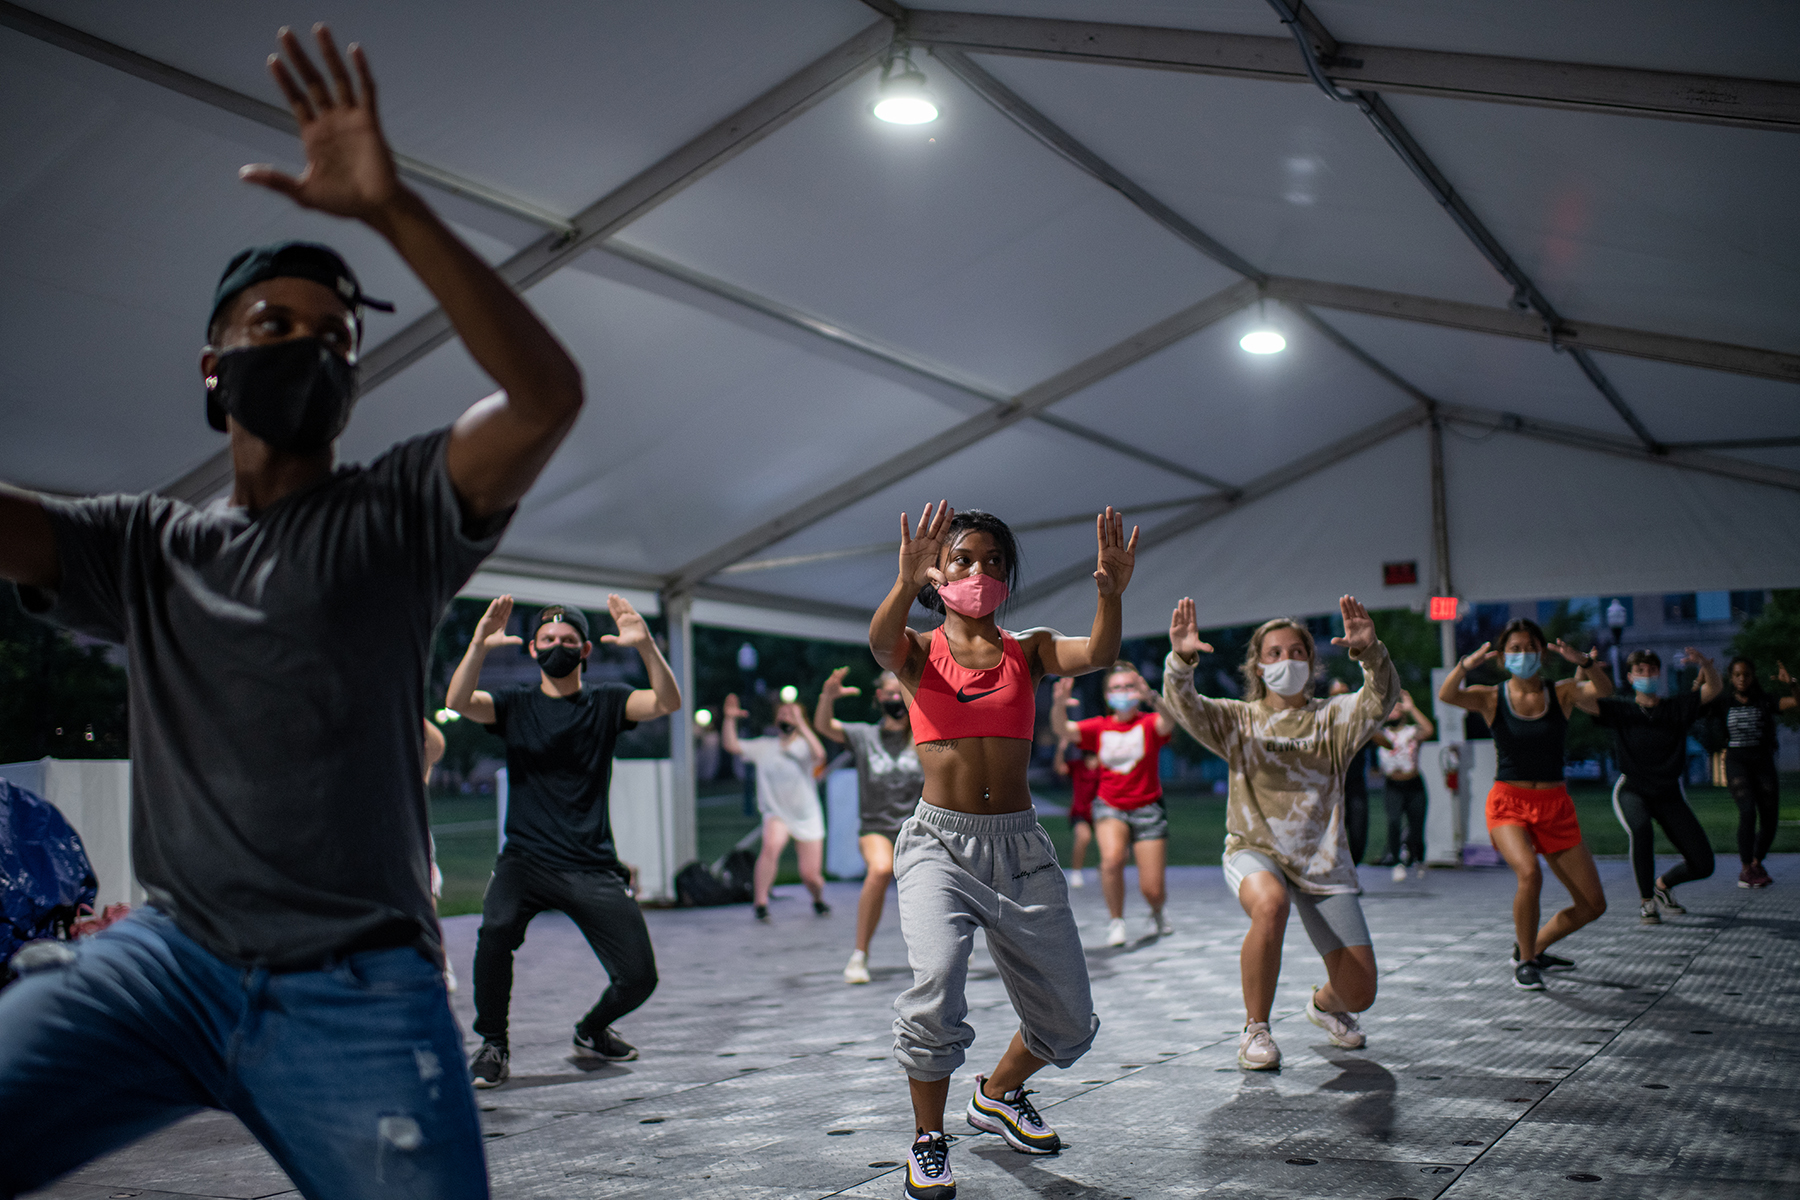 Students in sneakers and hip hop attire dance under an outdoor tent. With their heels off the ground, they turn slightly to the side with their palms up facing away from them.